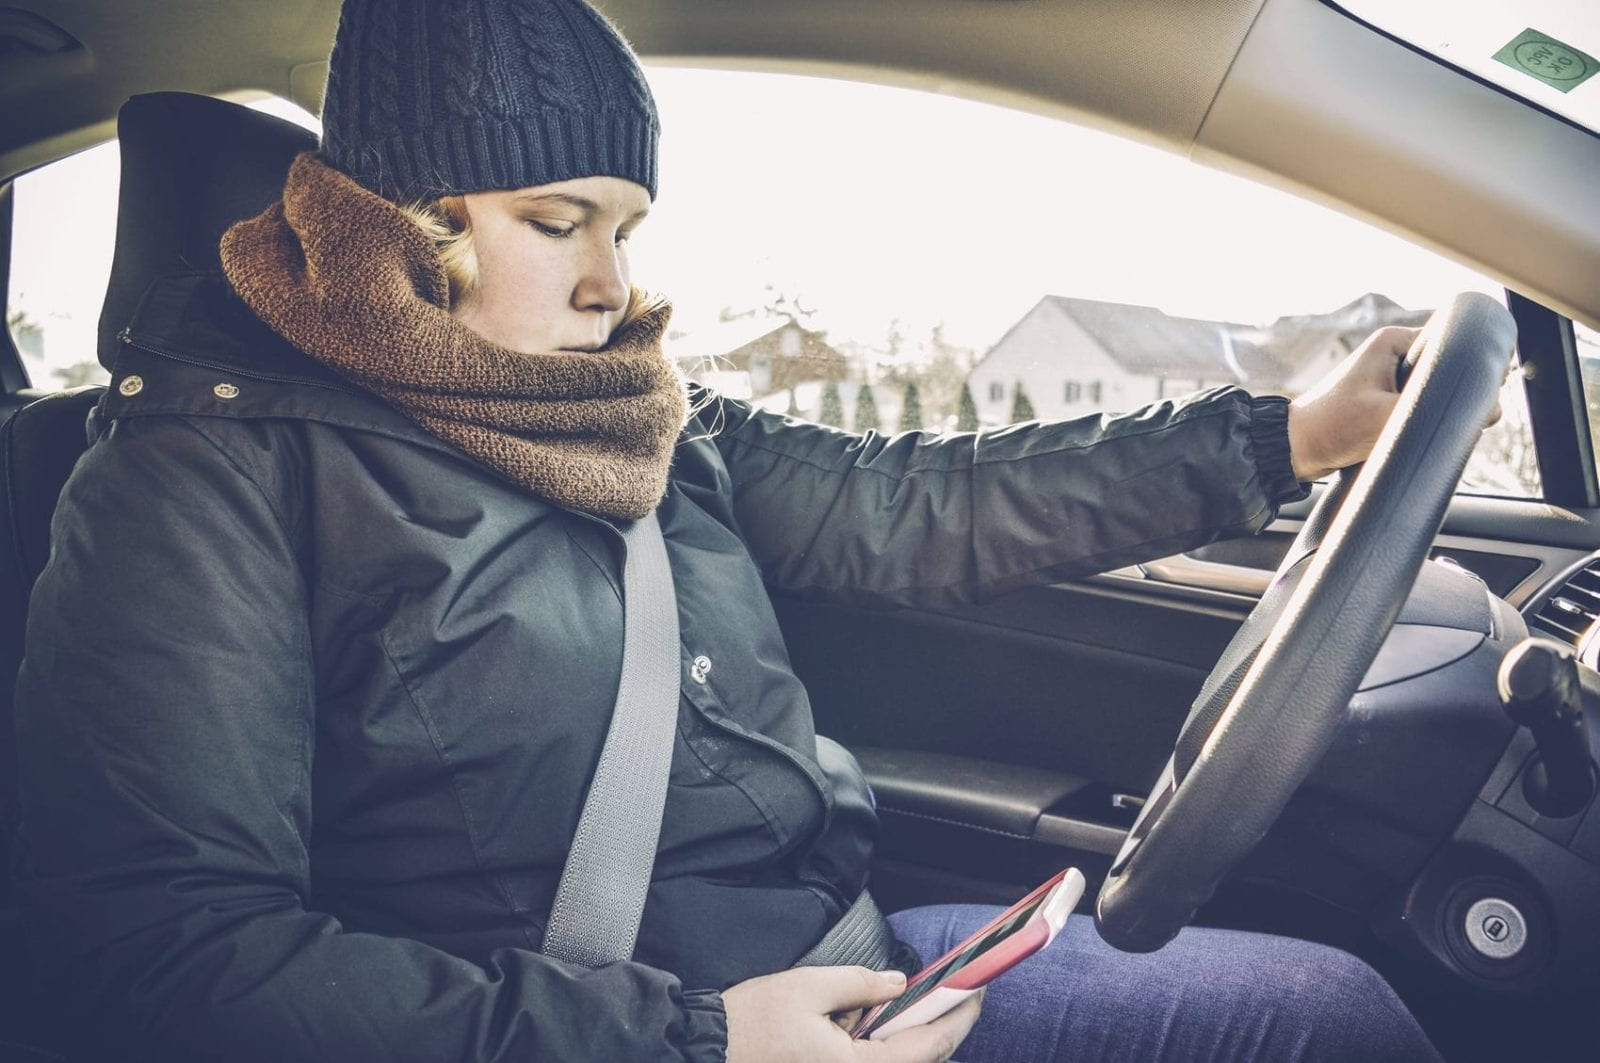 Teenage Girl Texting While Driving Her Vehicle Stock Photo